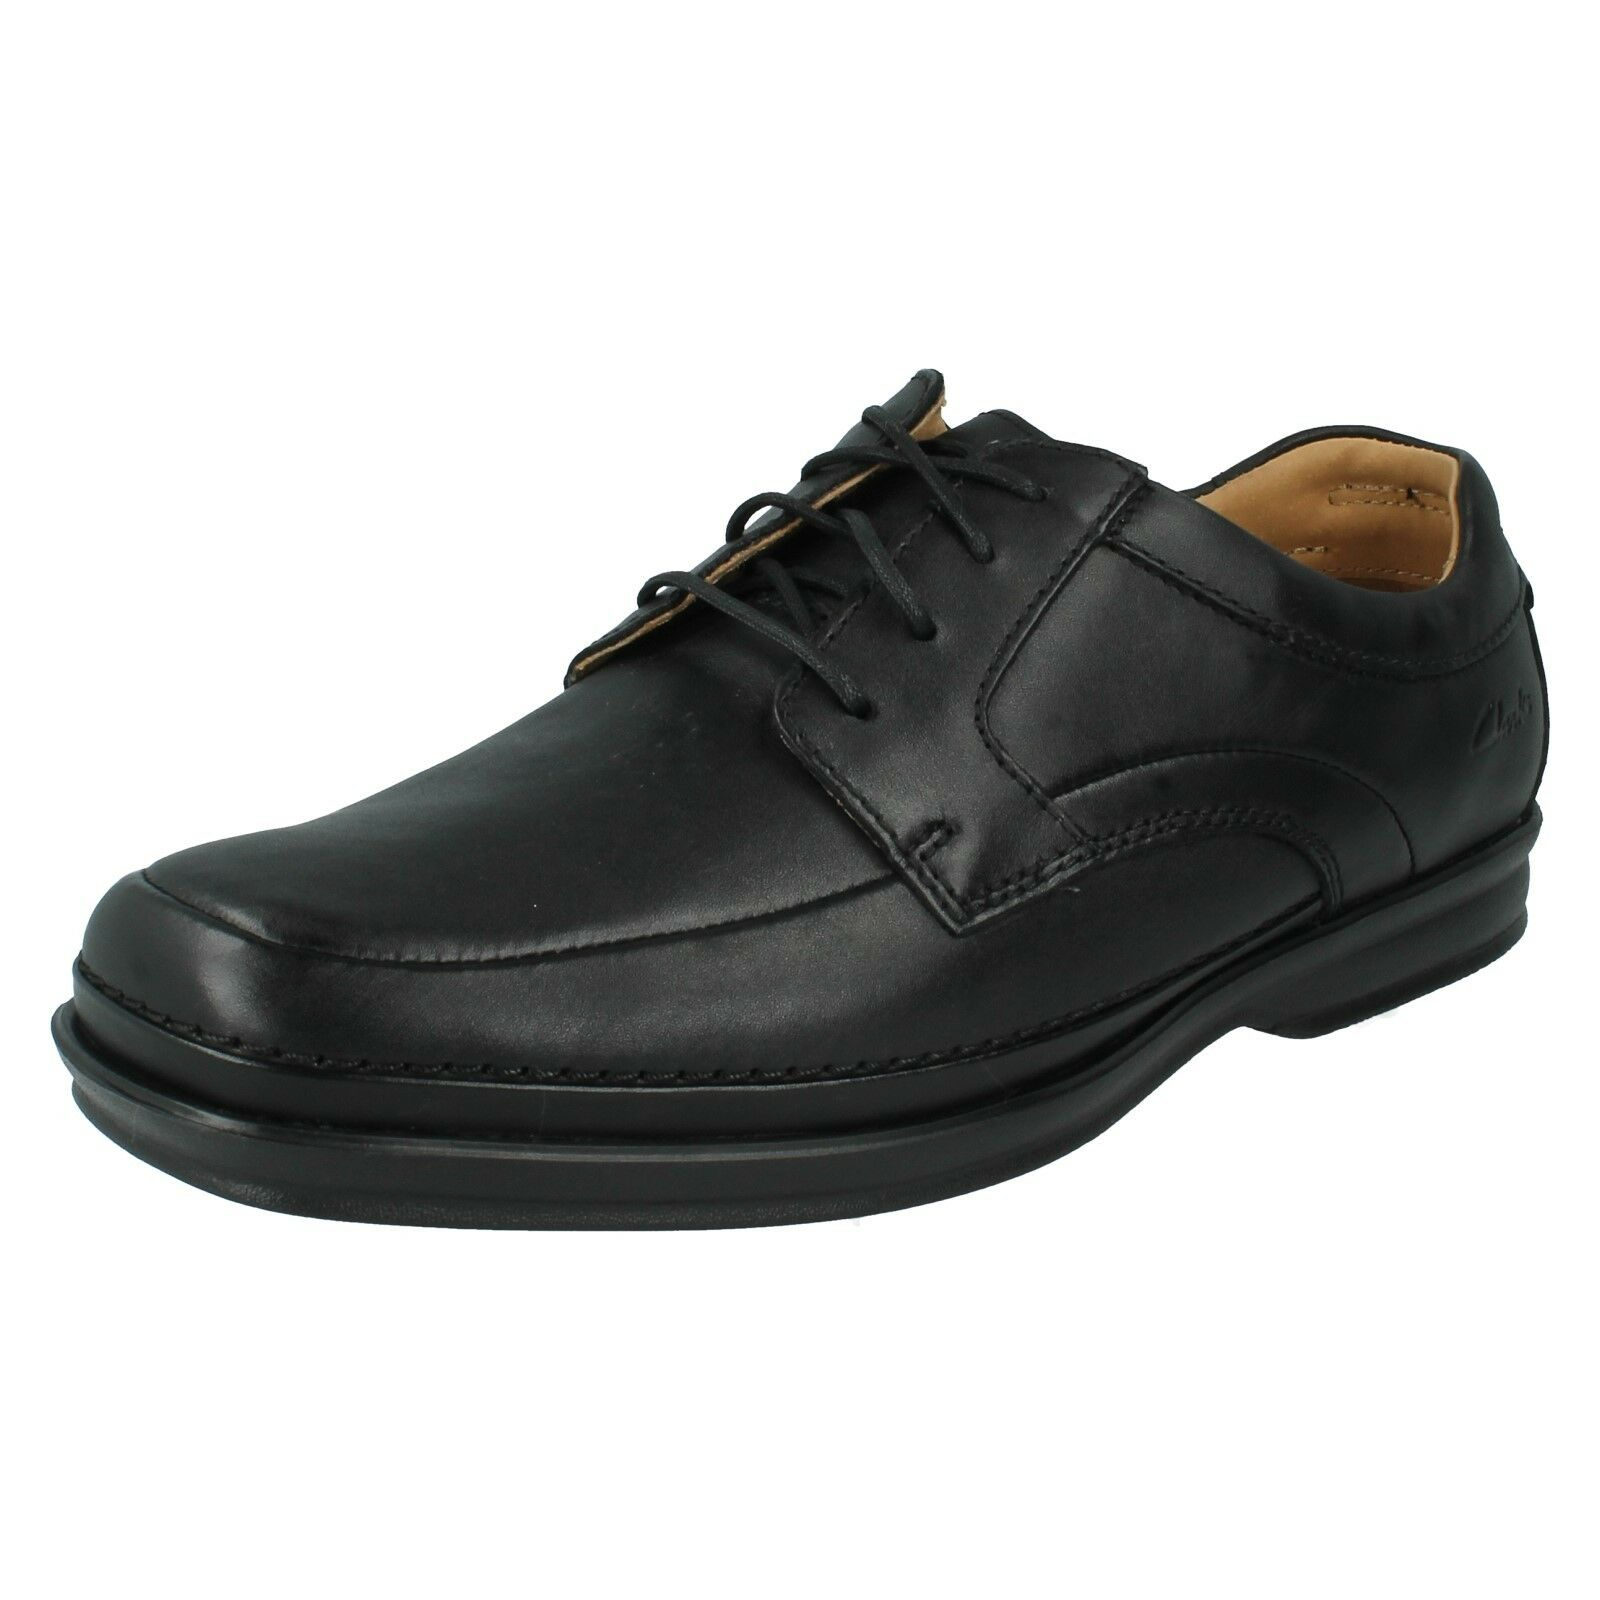 Herren CLARKS LEATHER ACTIVE AIR WIDE CASUAL SMART LACE SIZE UP Schuhe SCOPIC WAY SIZE LACE 073760